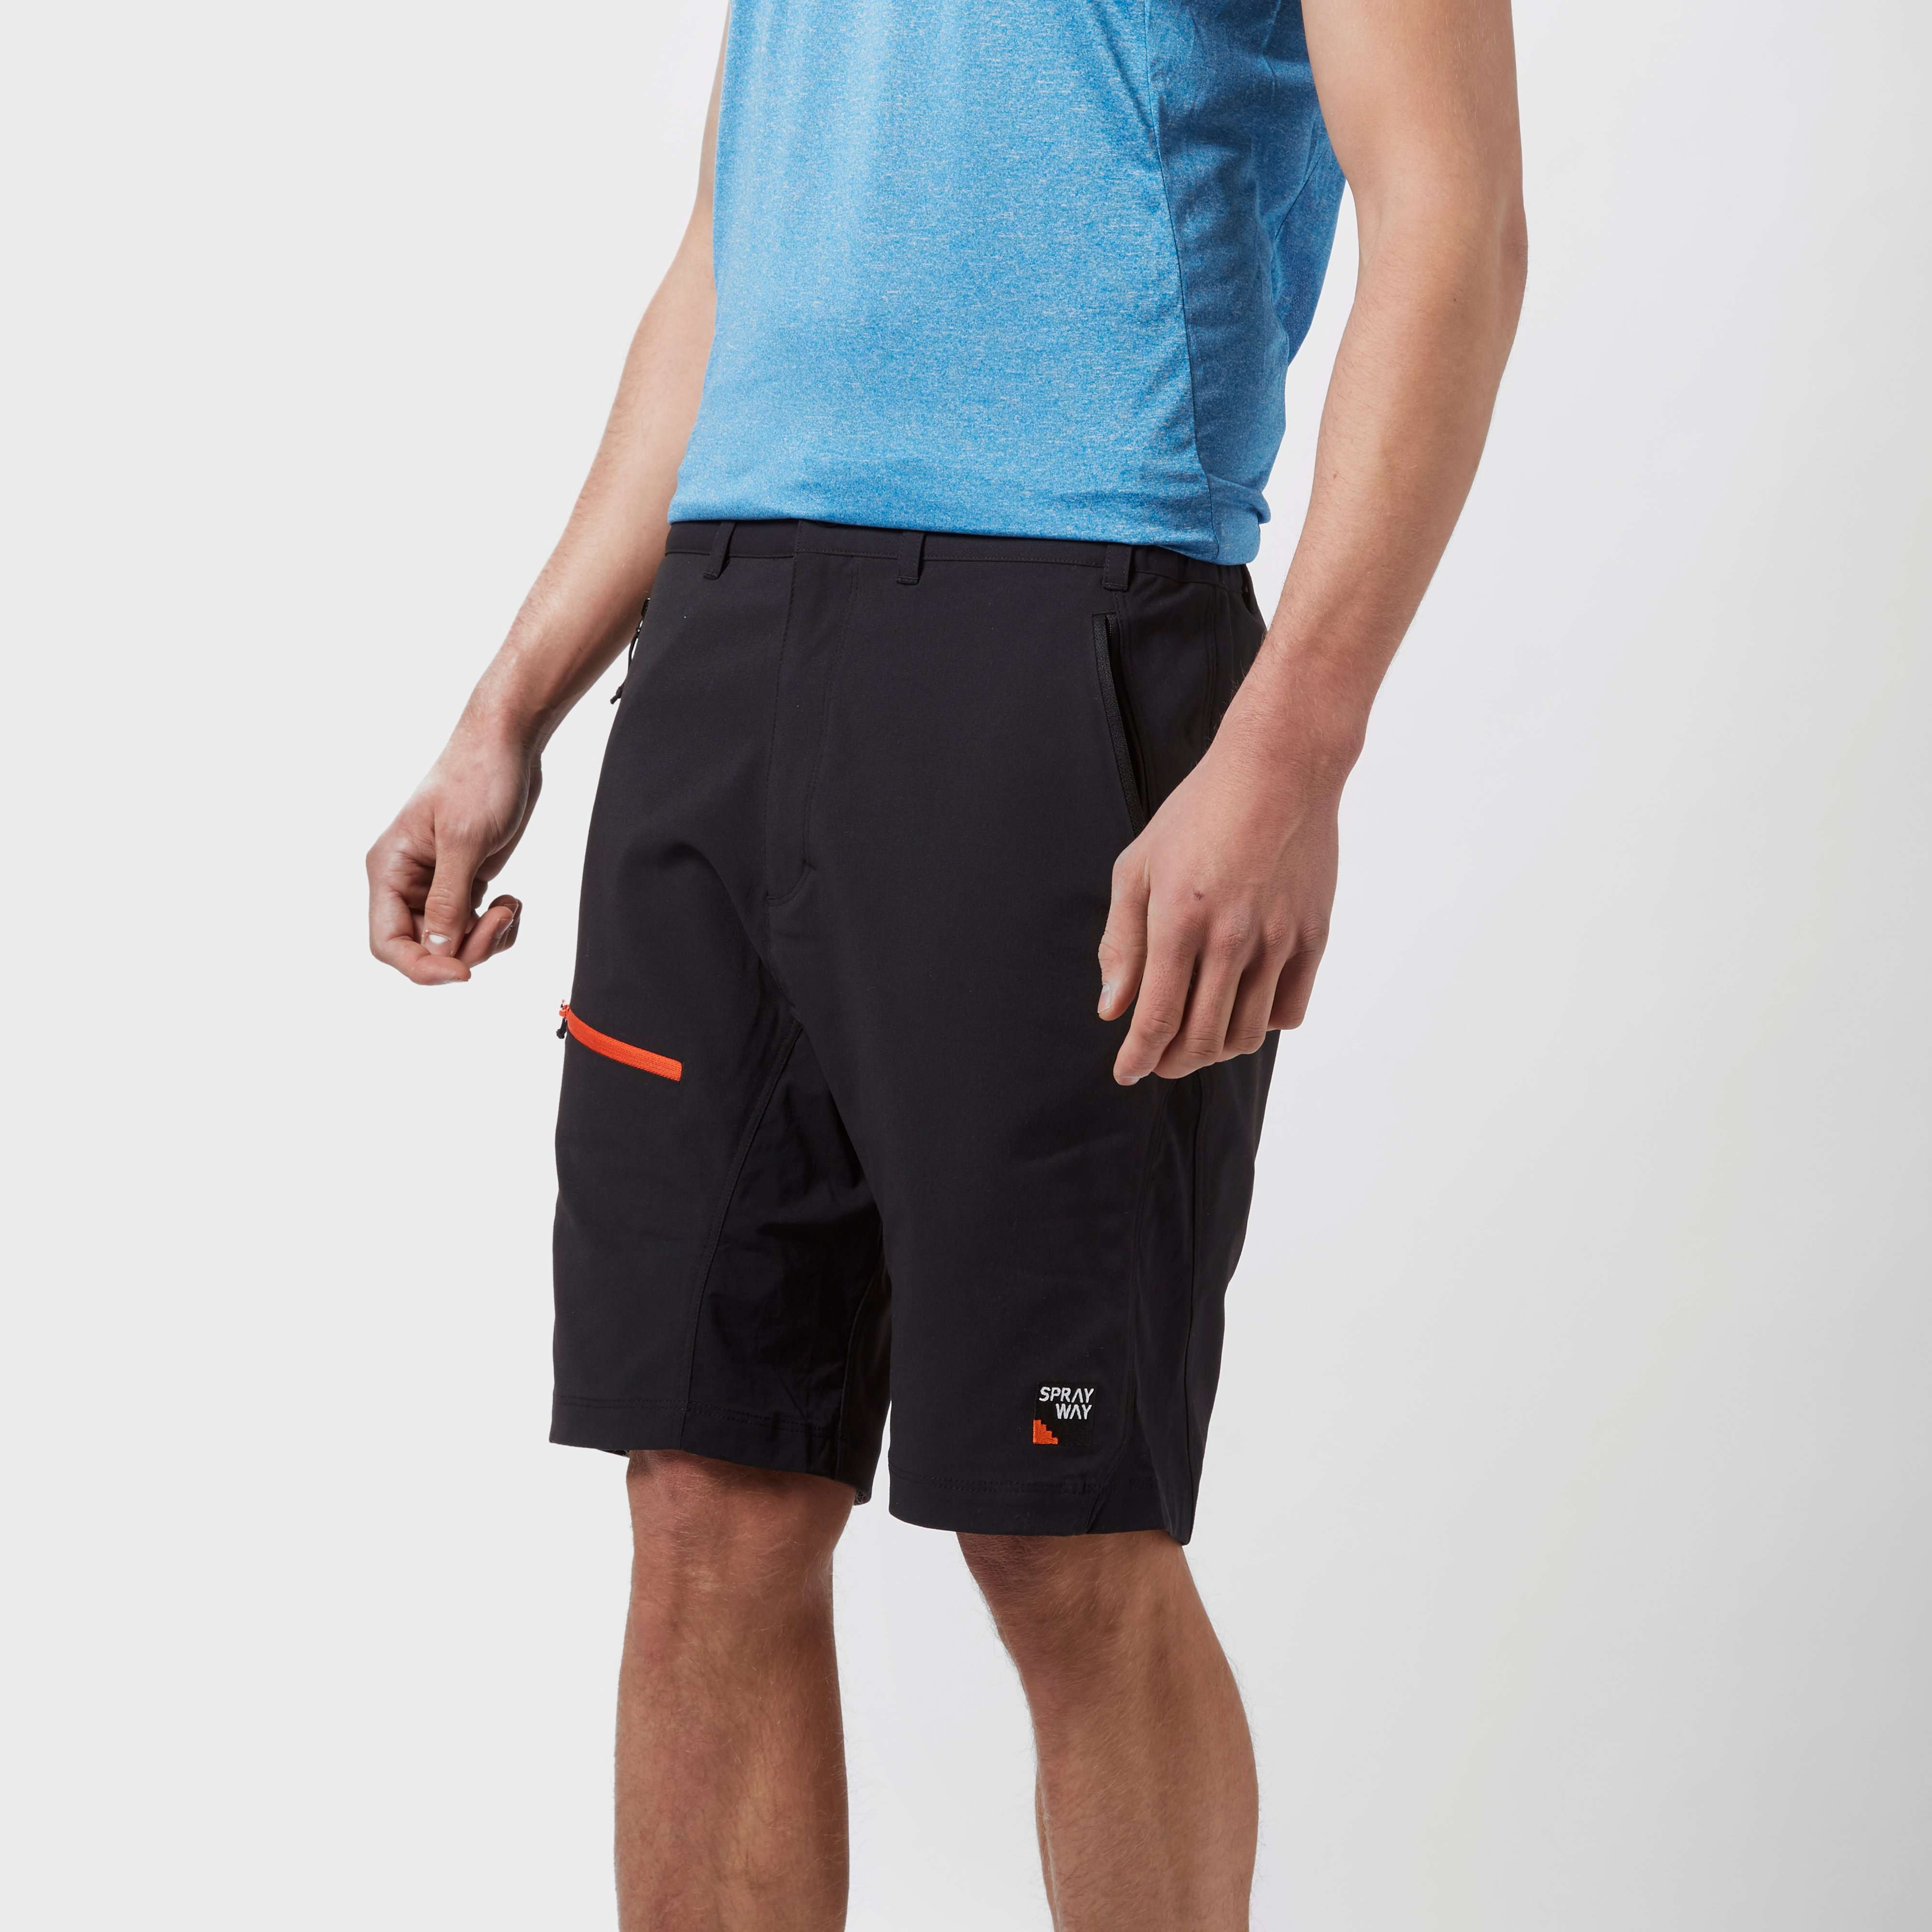 SPRAYWAY Men's Sandur Shorts